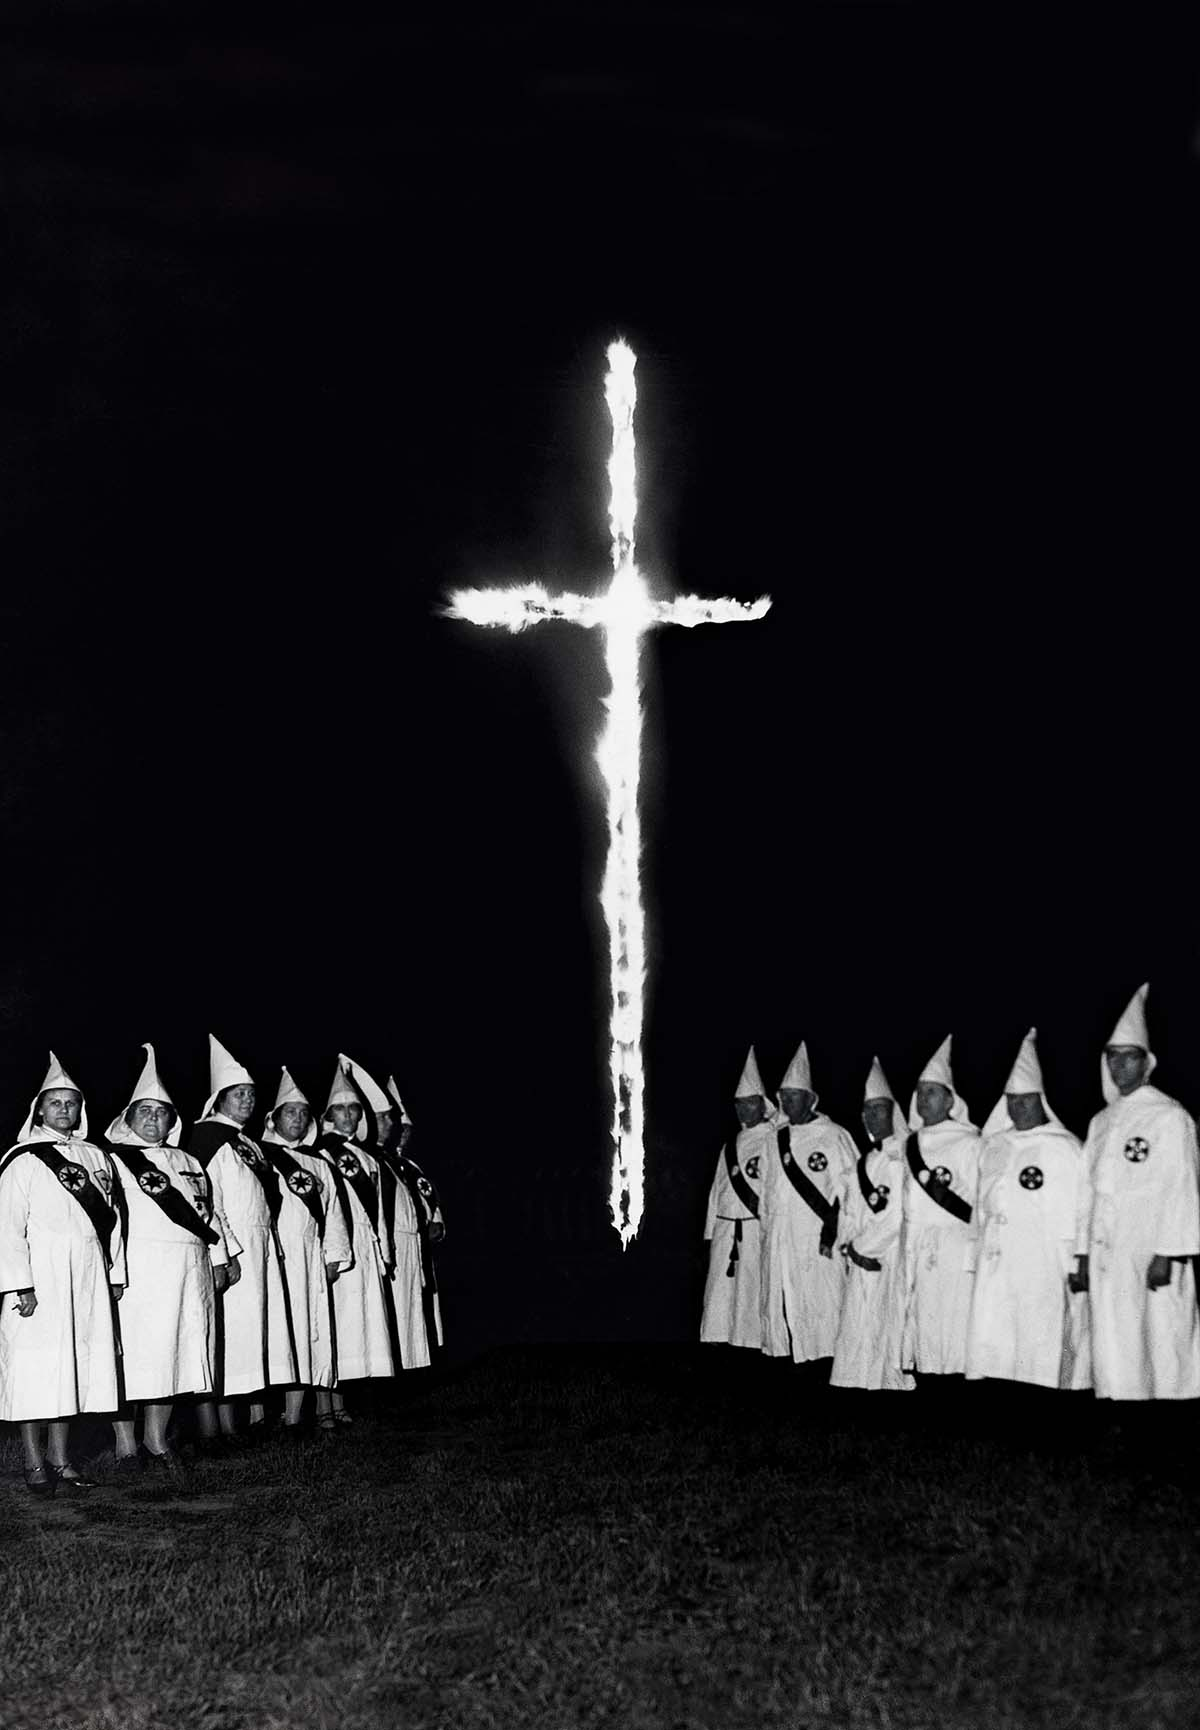 Klansmen and woman surround a burning cross, c.1940s. Getty Images.